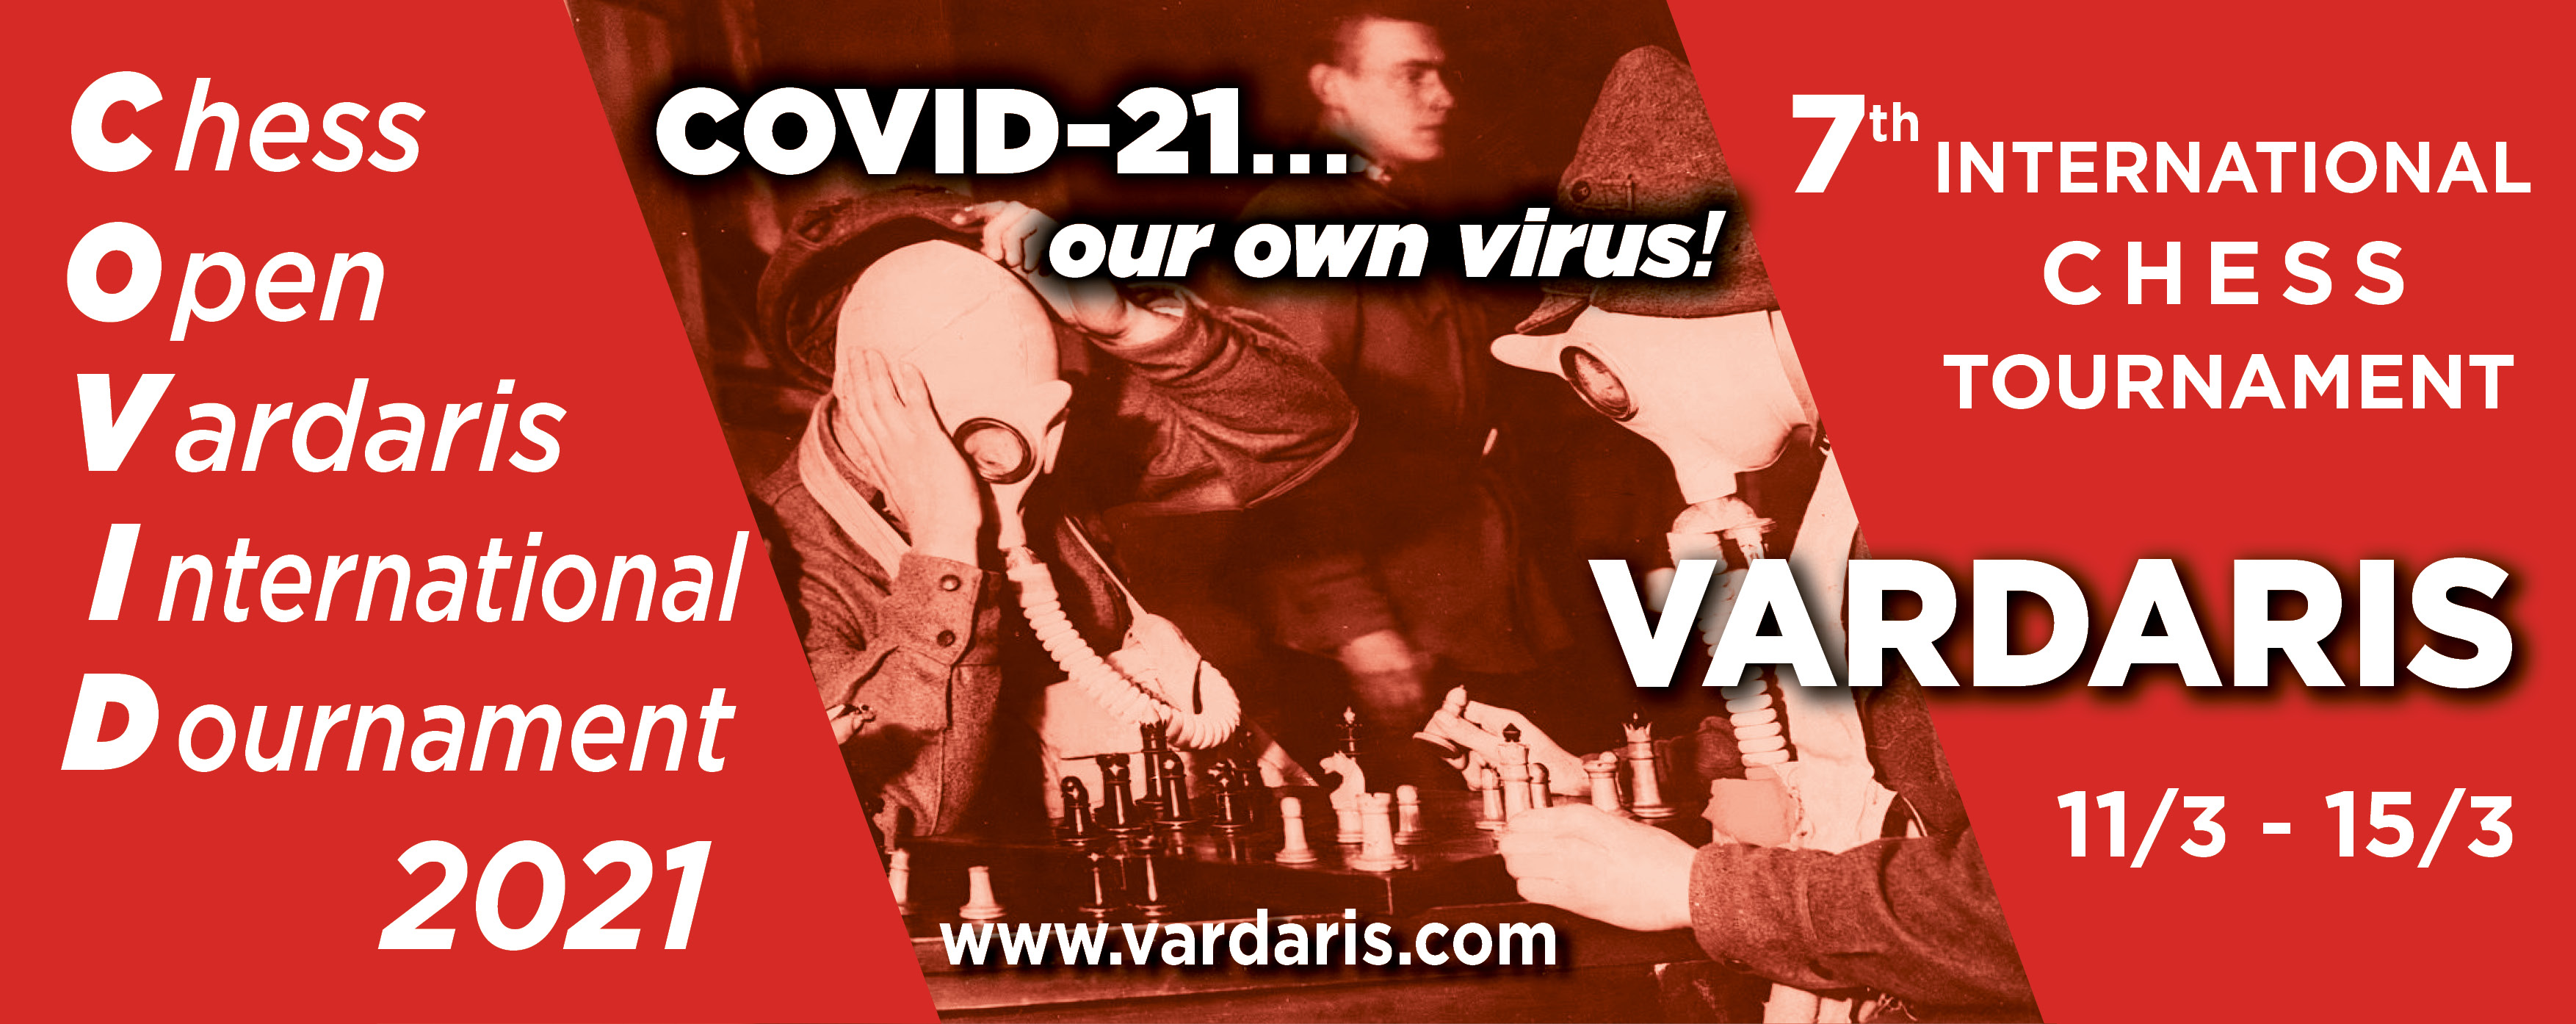 "Announcement for the 7th International Chess Tournament ""Vardaris"""